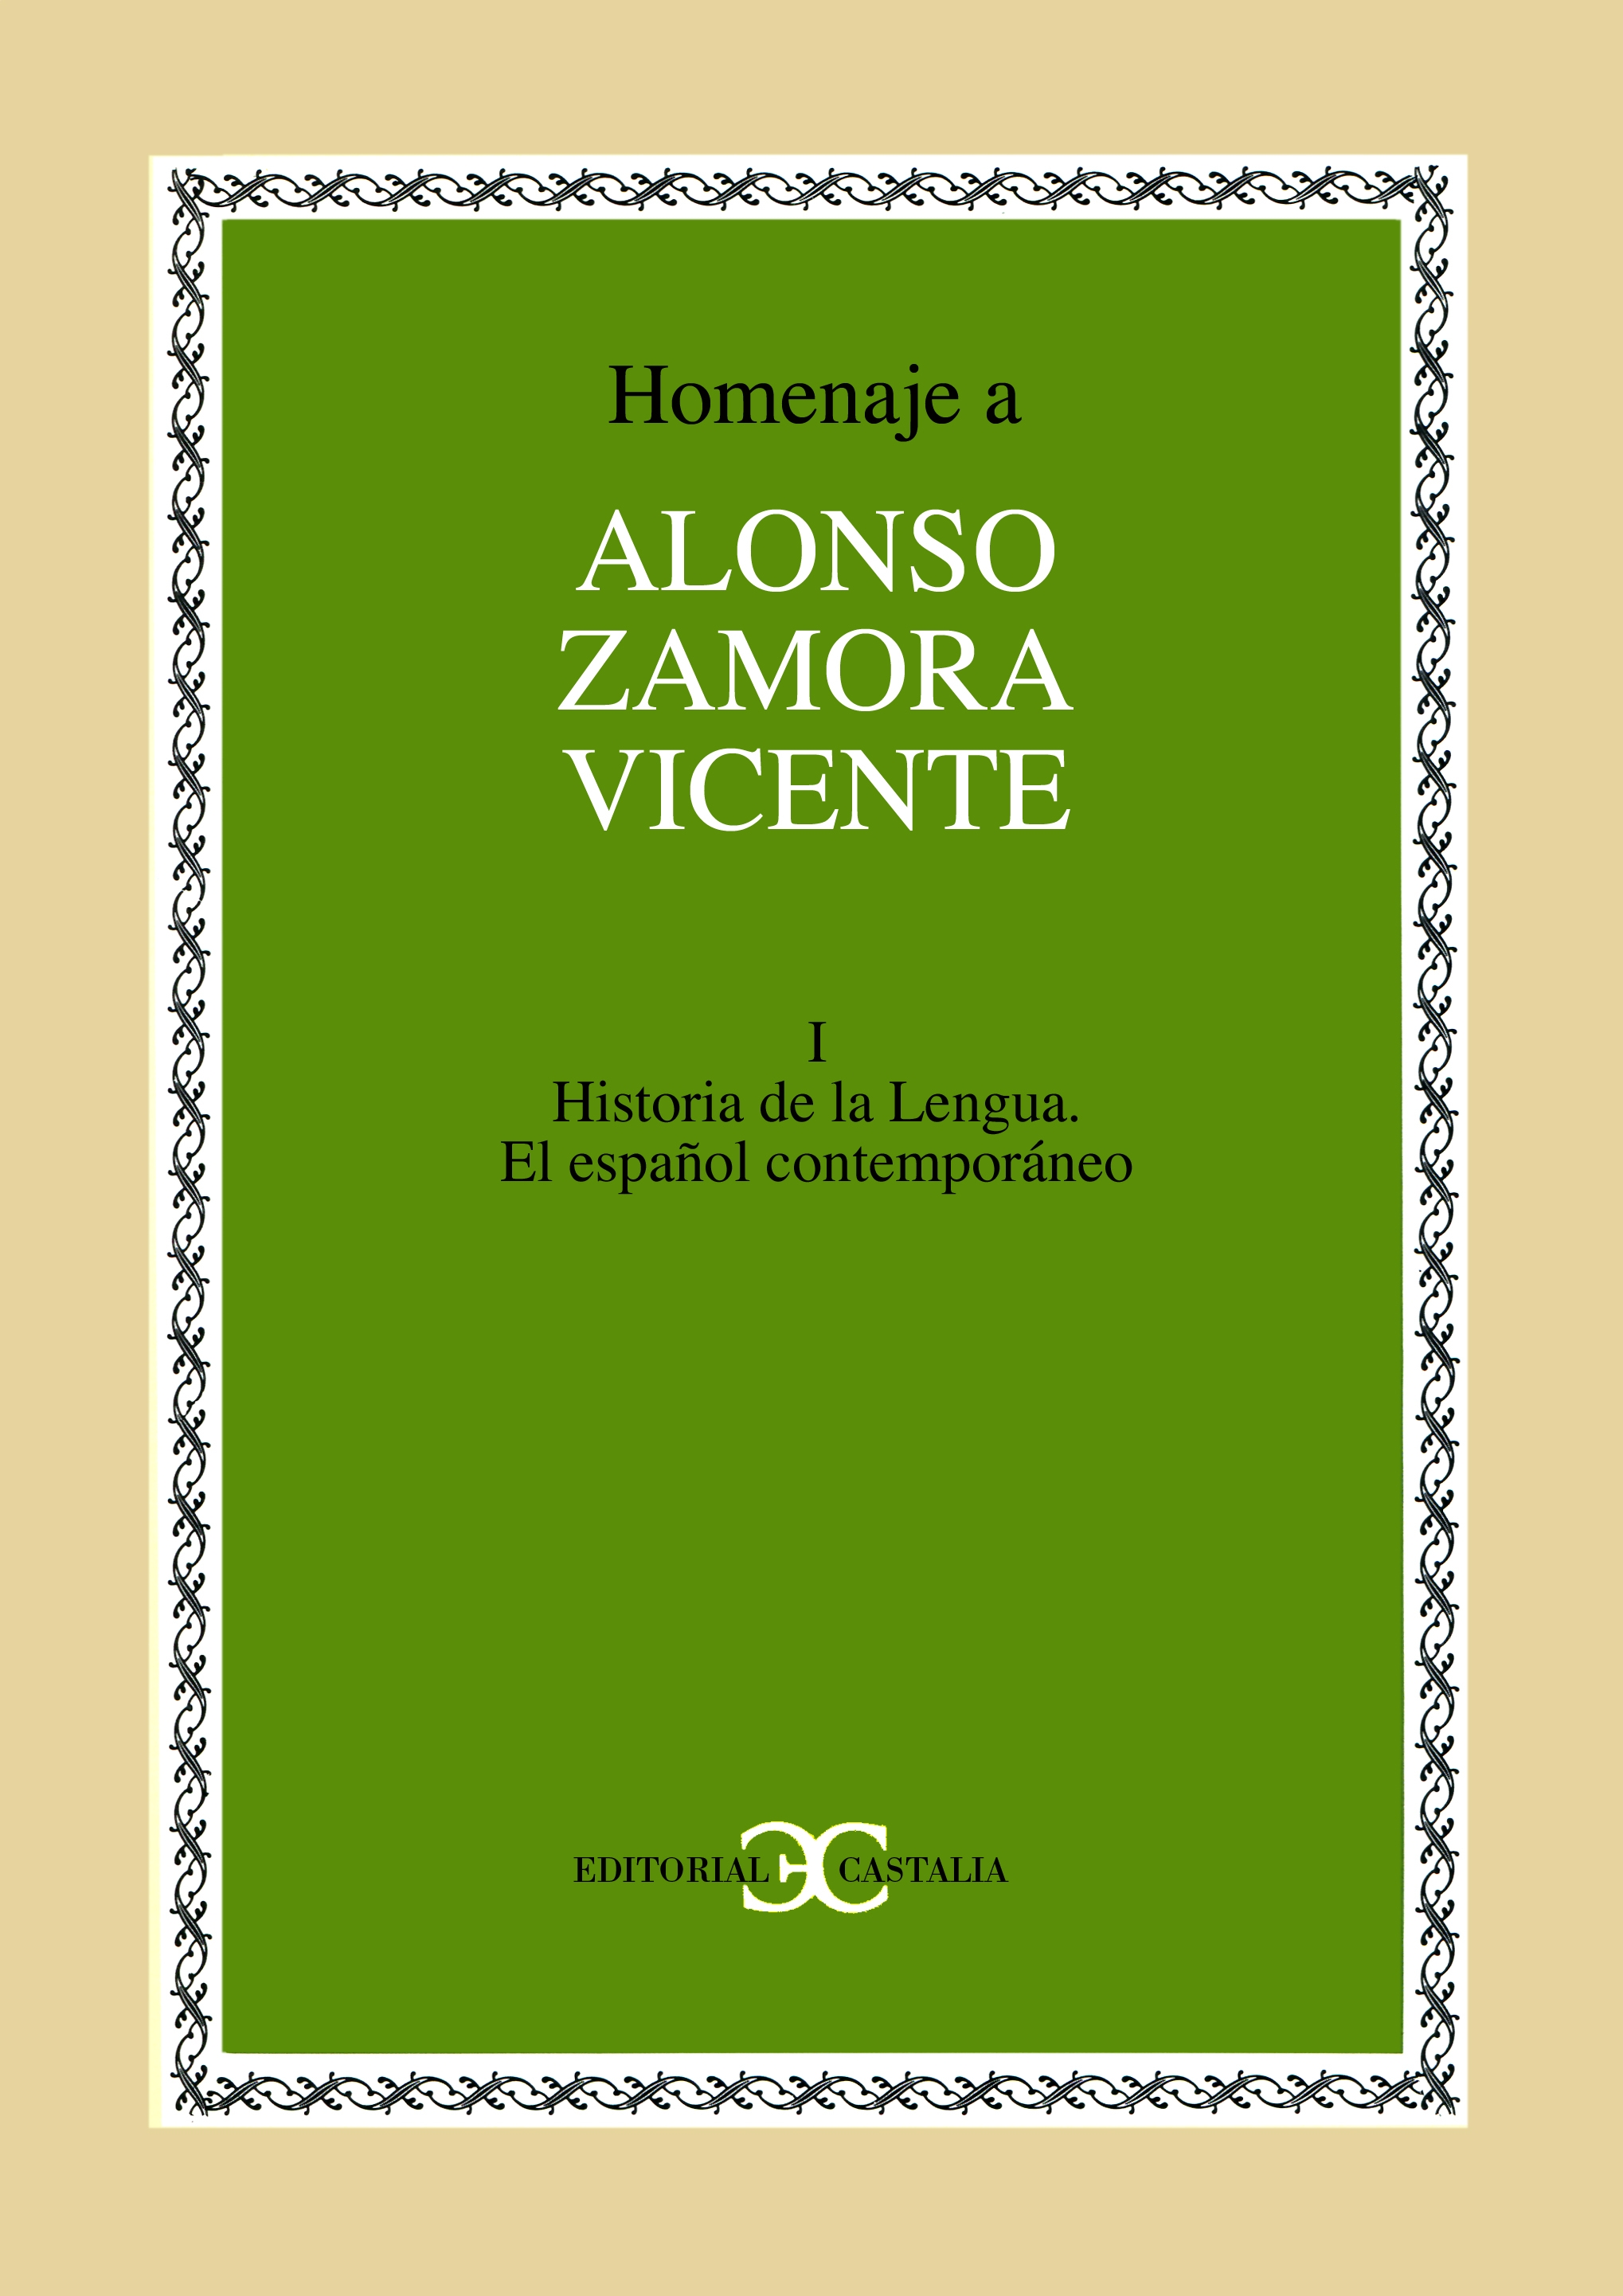 Homenaje a Alonso Zamora Vicente. Volumen I